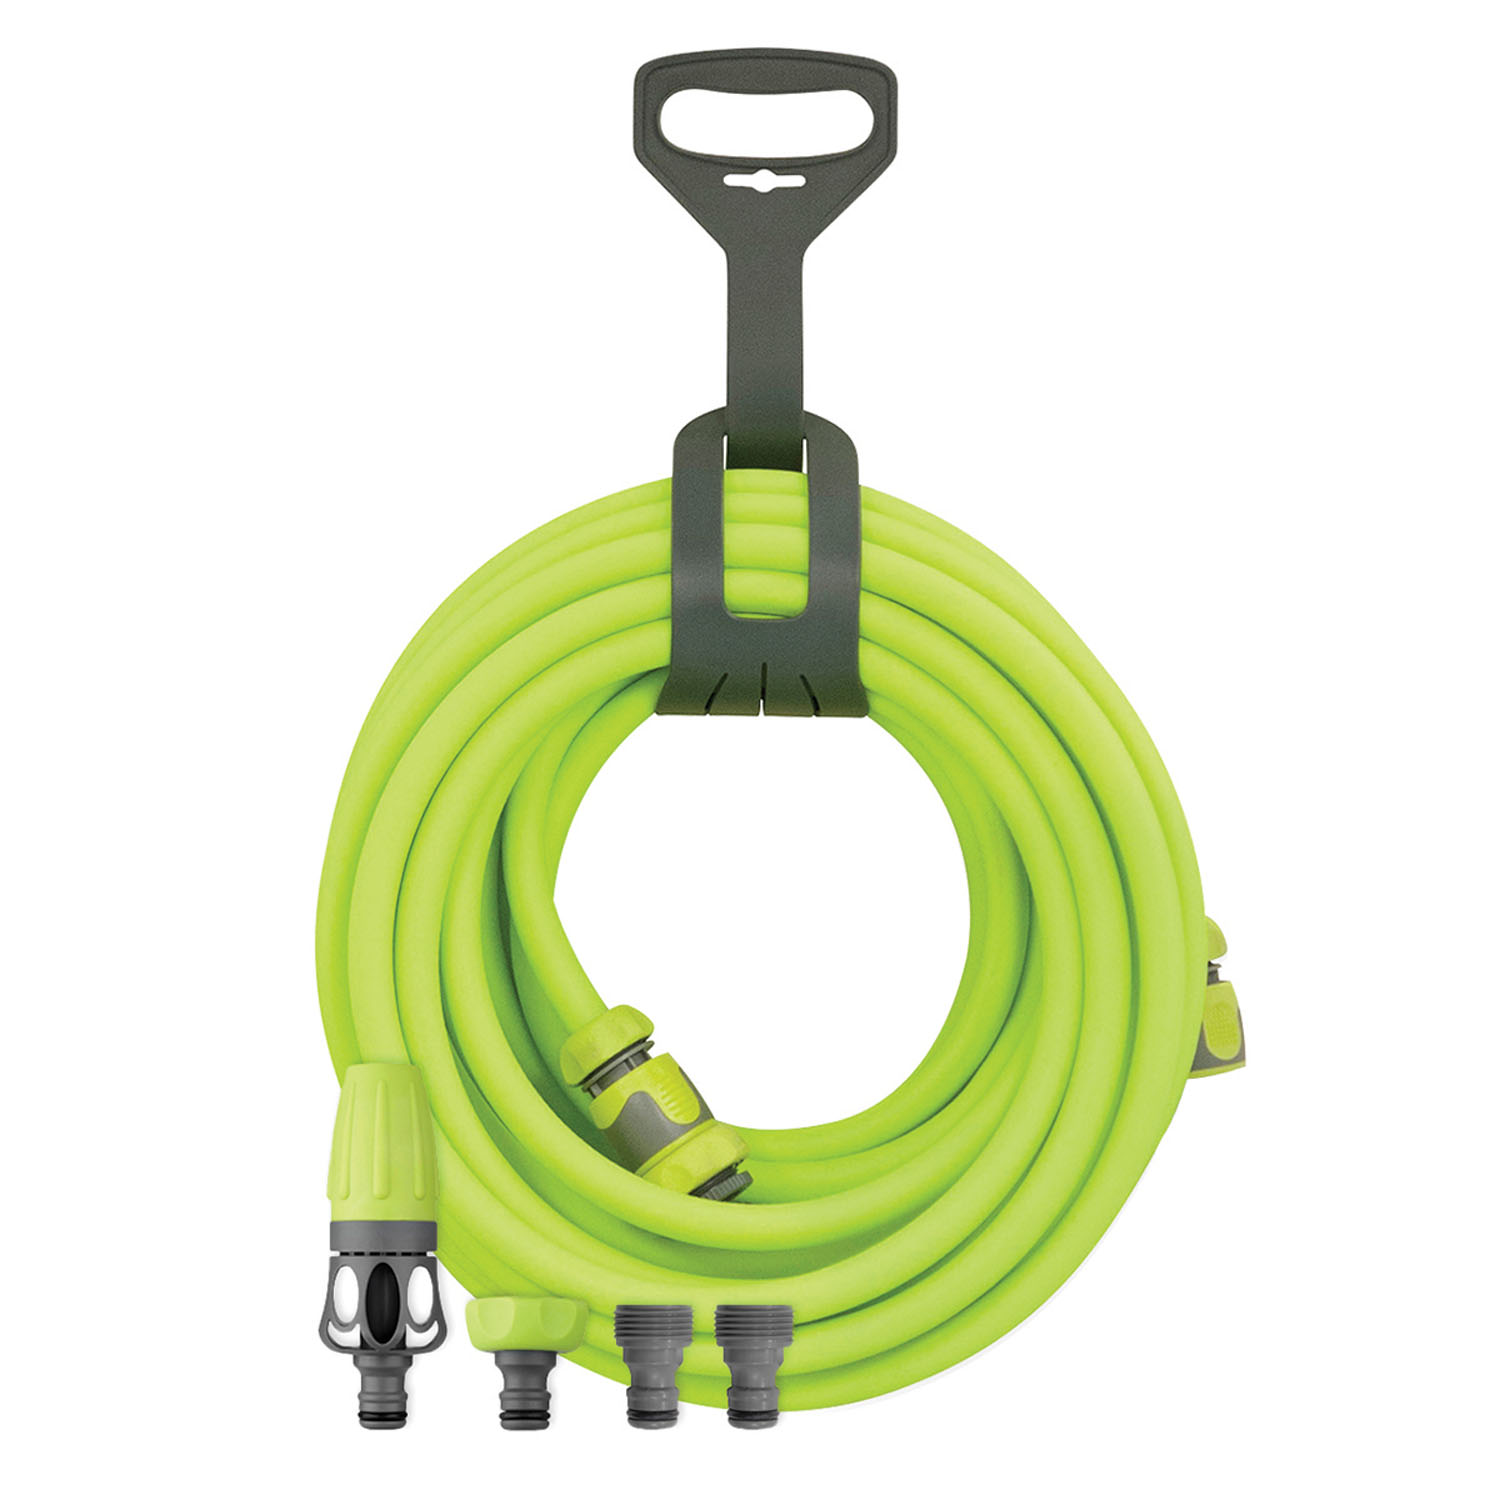 "Legacy Manufacturing Company Flexzilla® Garden Hose Kit with Quick Connect Attachments, 1/2"" x 50'"